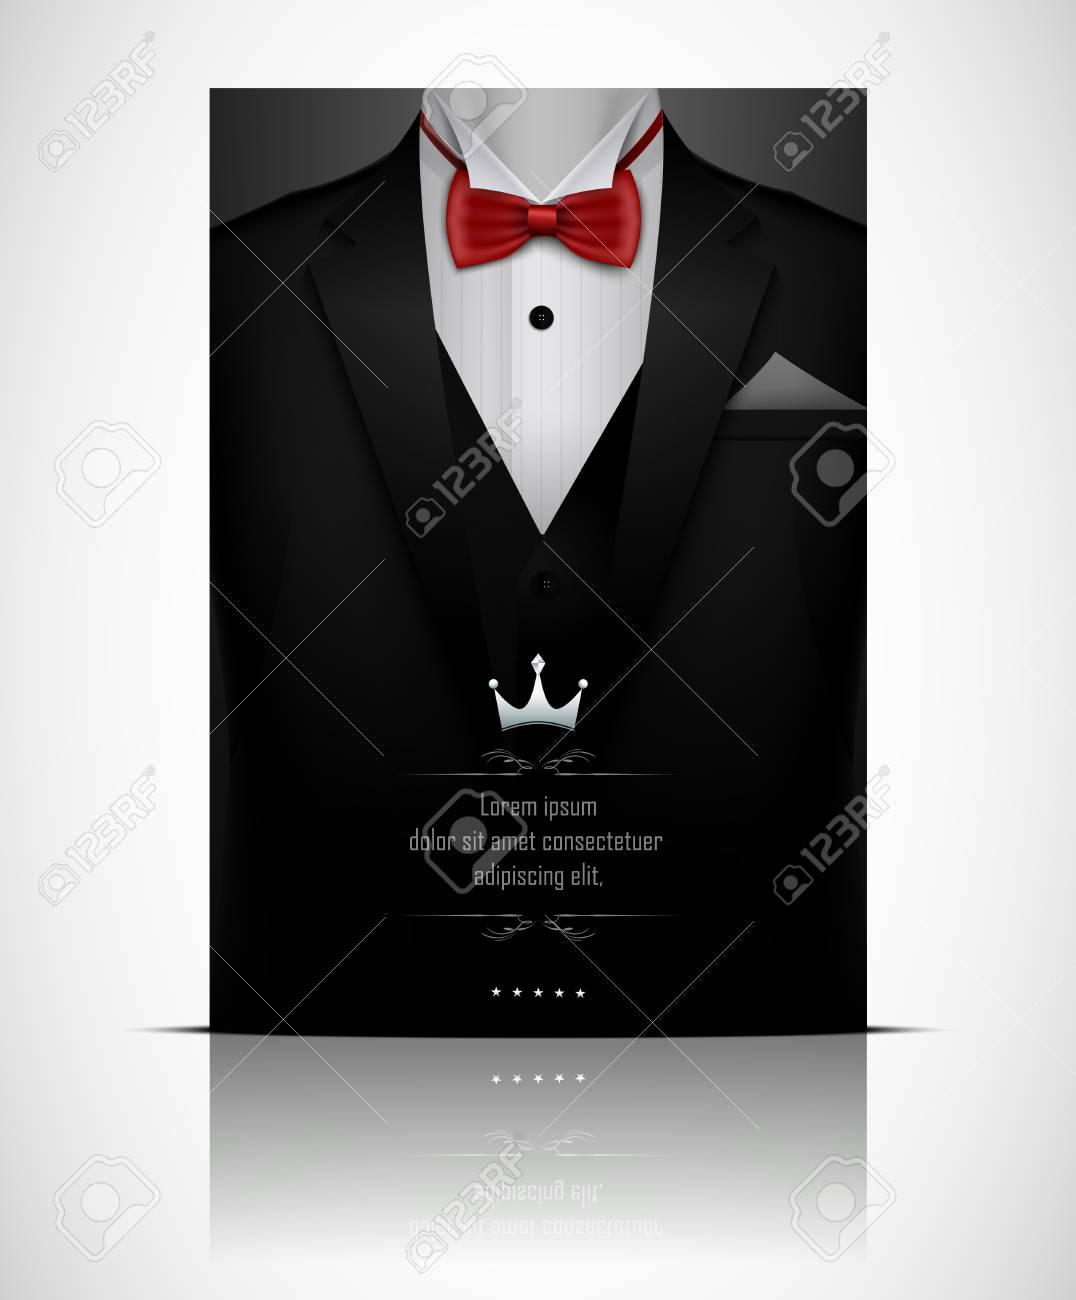 d99a501d74c1 Black Suit And Tuxedo With Red Bow Tie Stock Photo, Picture And ...